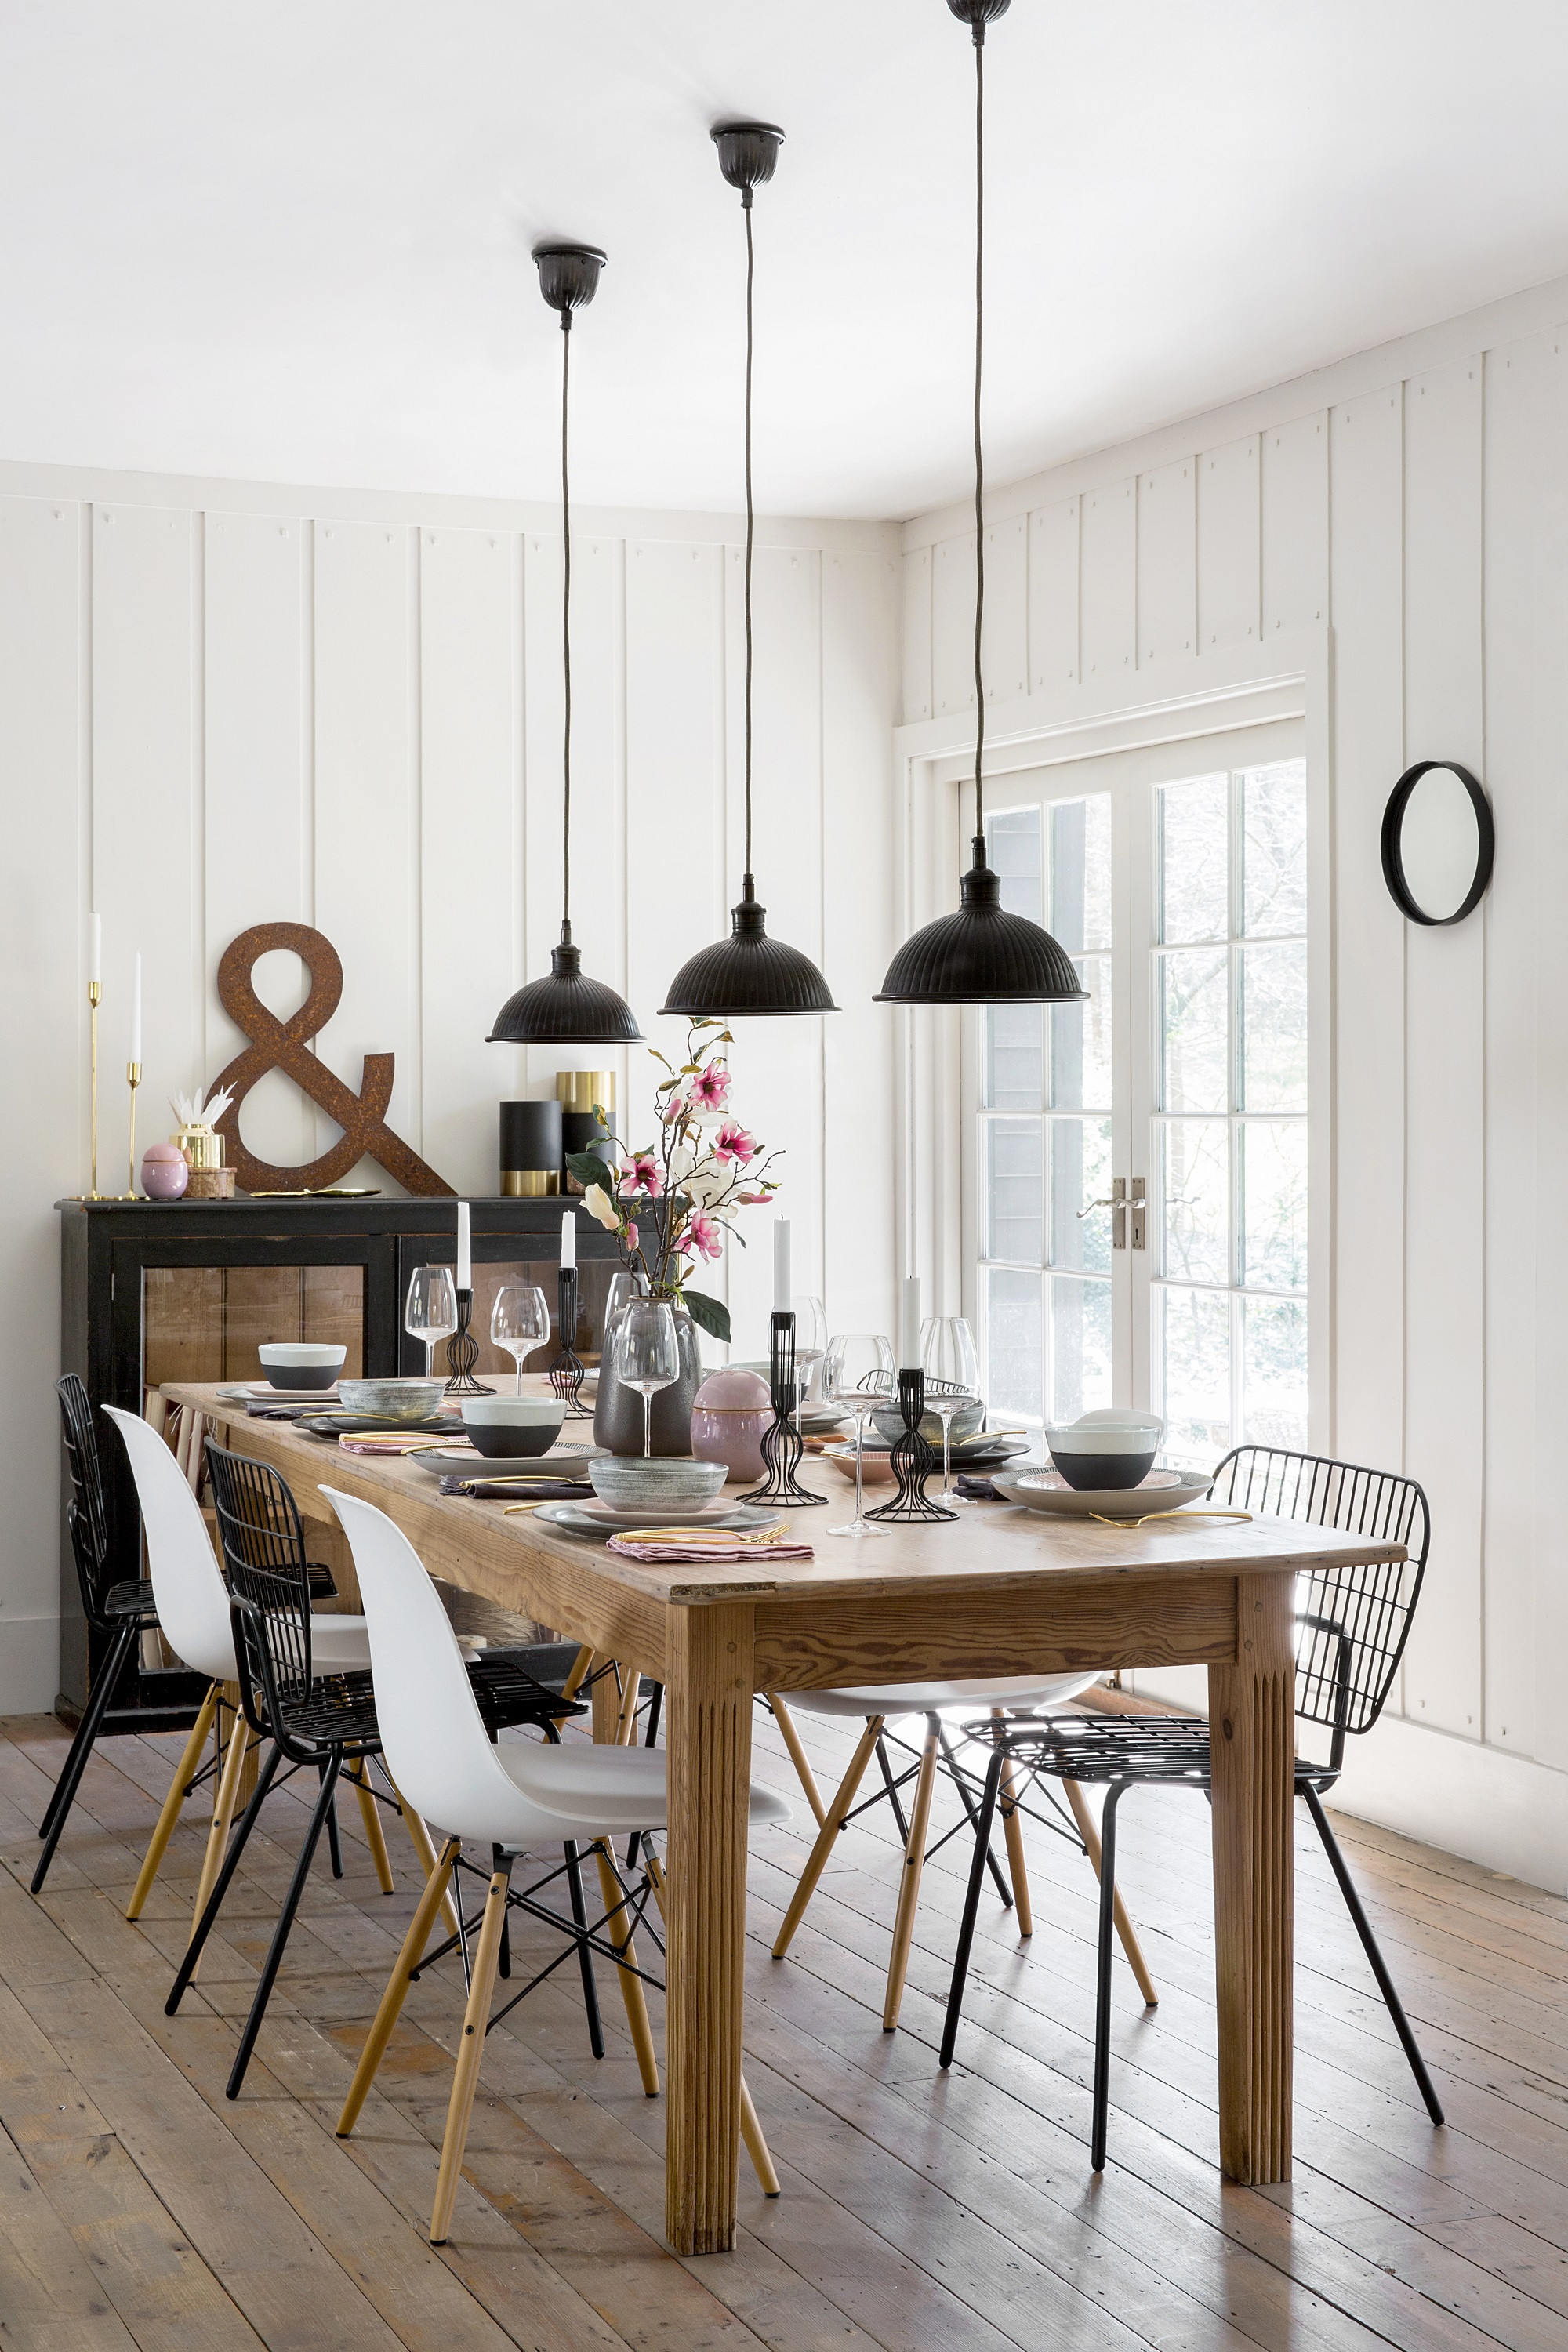 Best ideas about Dining Room Design Ideas . Save or Pin 32 Stylish Dining Room Ideas To Impress Your Dinner Guests Now.